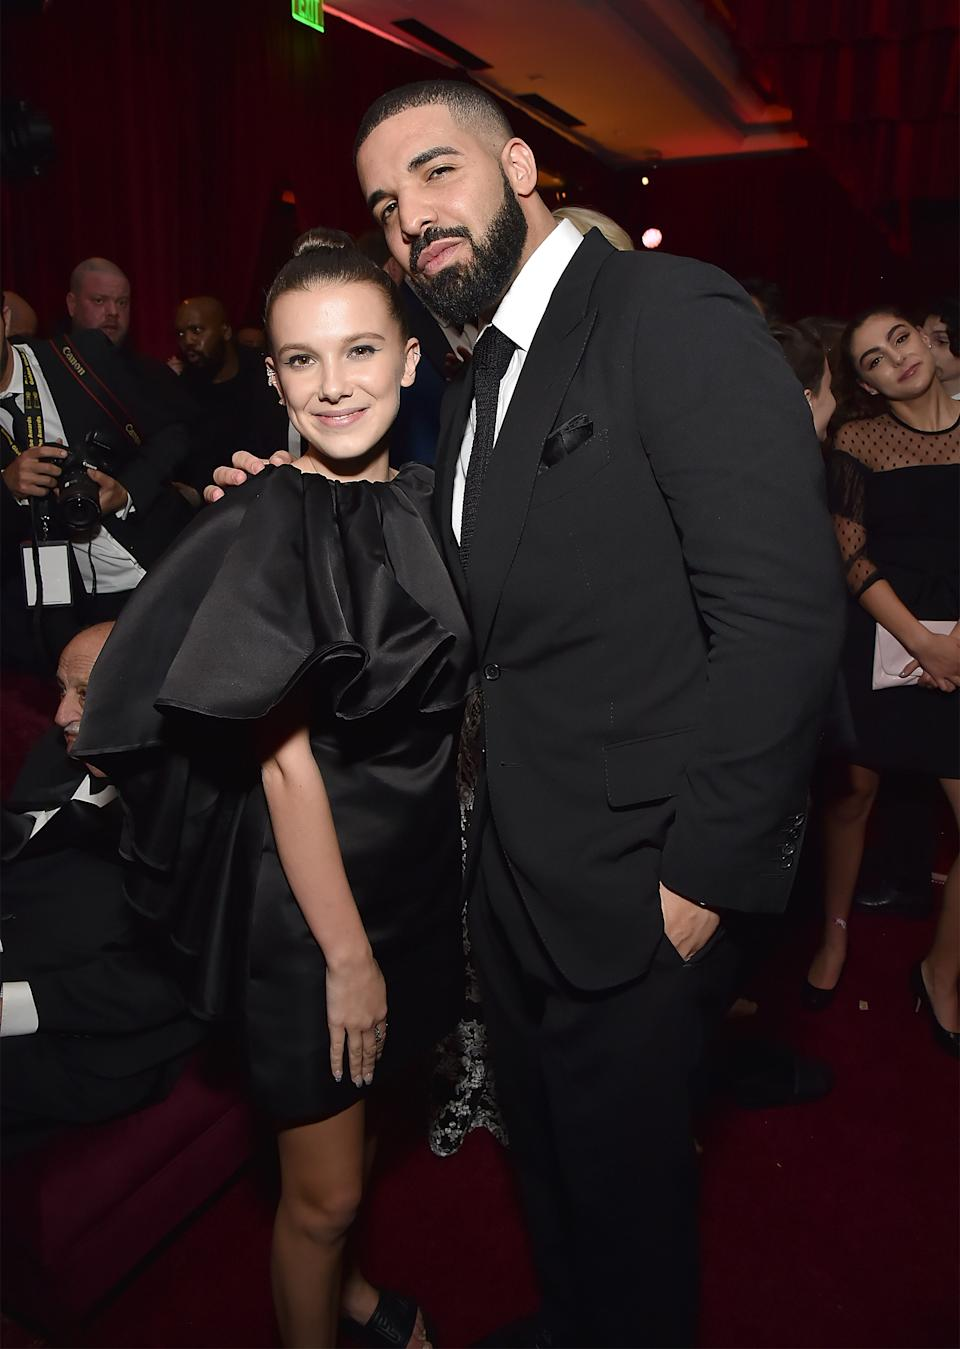 Millie Bobby Brown and Drake attend the Netflix Golden Globes after party at Waldorf Astoria Beverly Hills on January 7, 2018 in Beverly Hills, California.  (Photo by Kevin Mazur/Getty Images for Netflix)